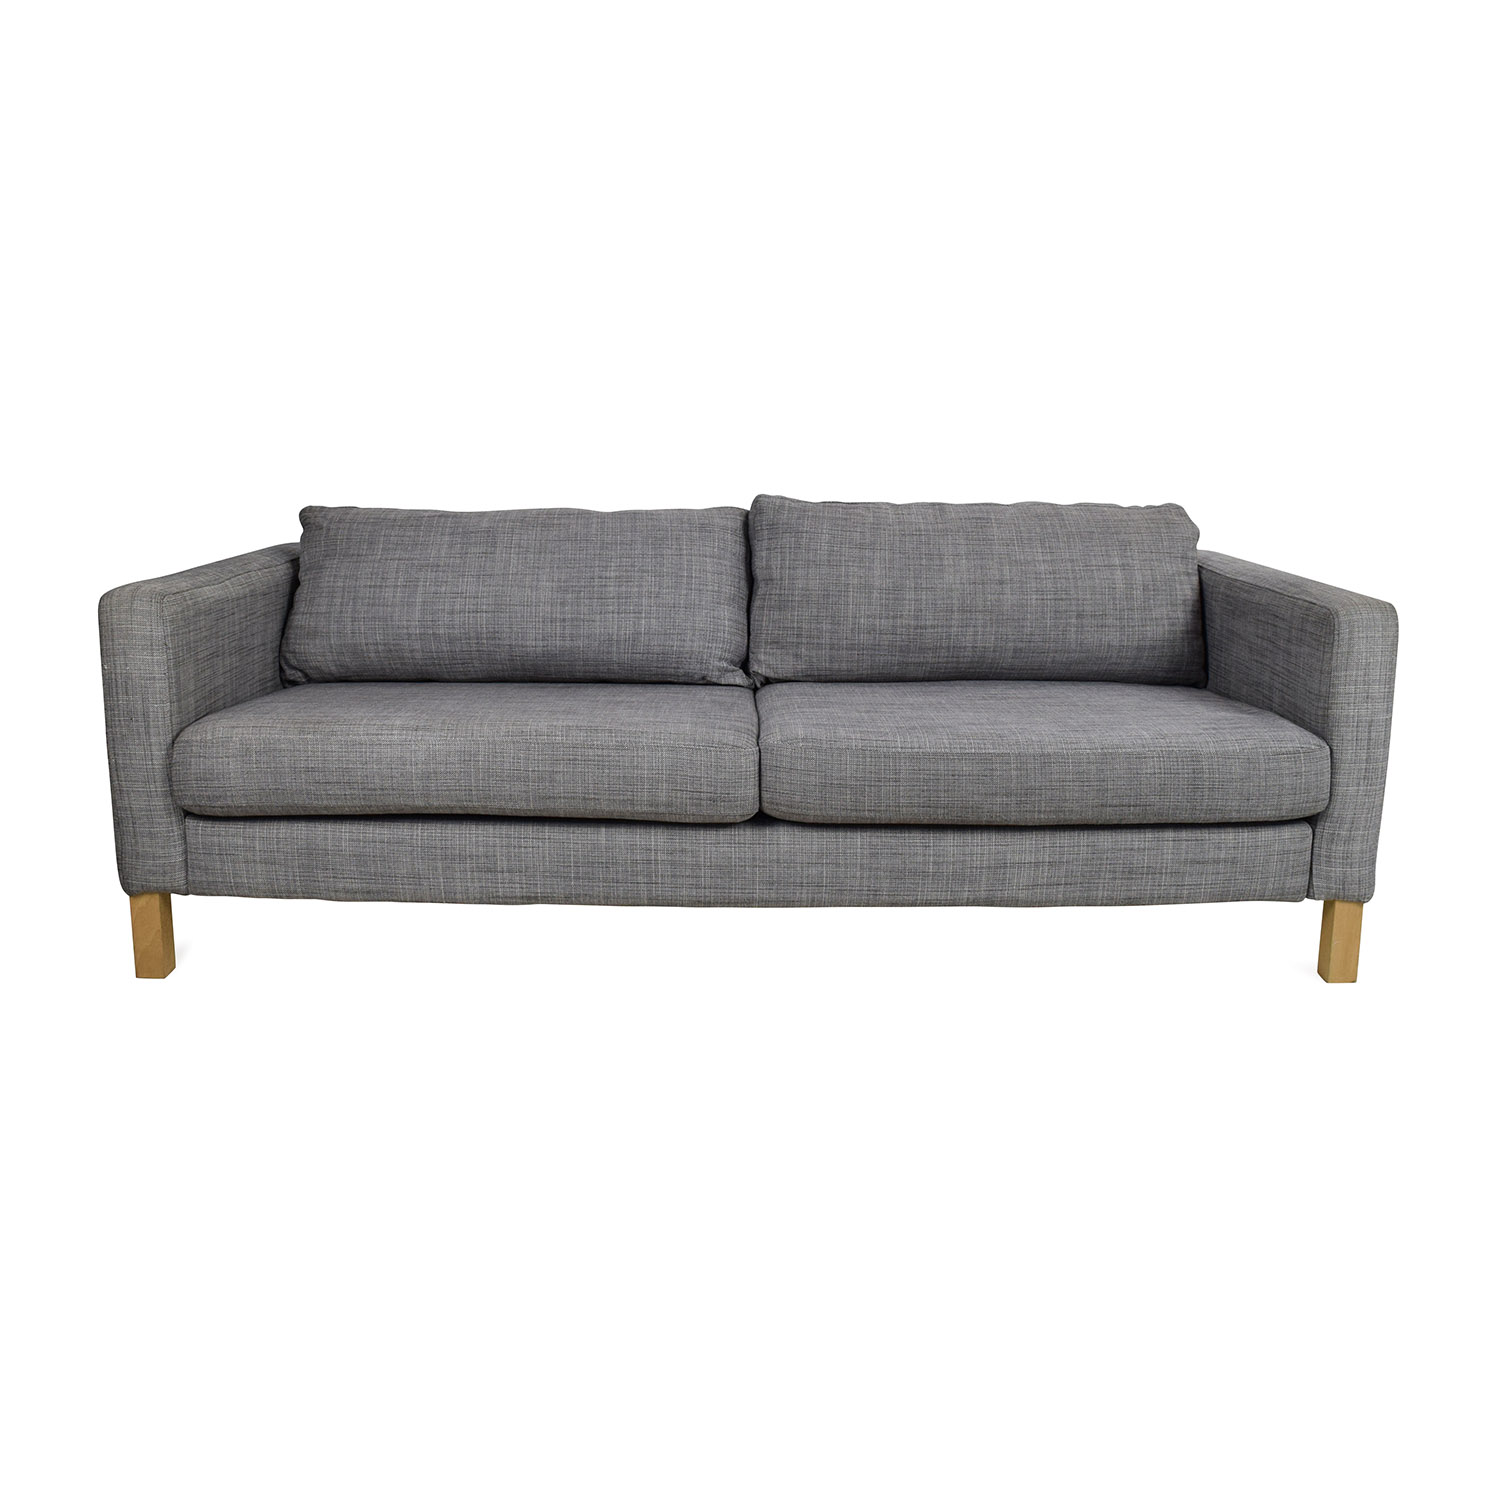 ikea karlstad sofa coupon. Black Bedroom Furniture Sets. Home Design Ideas